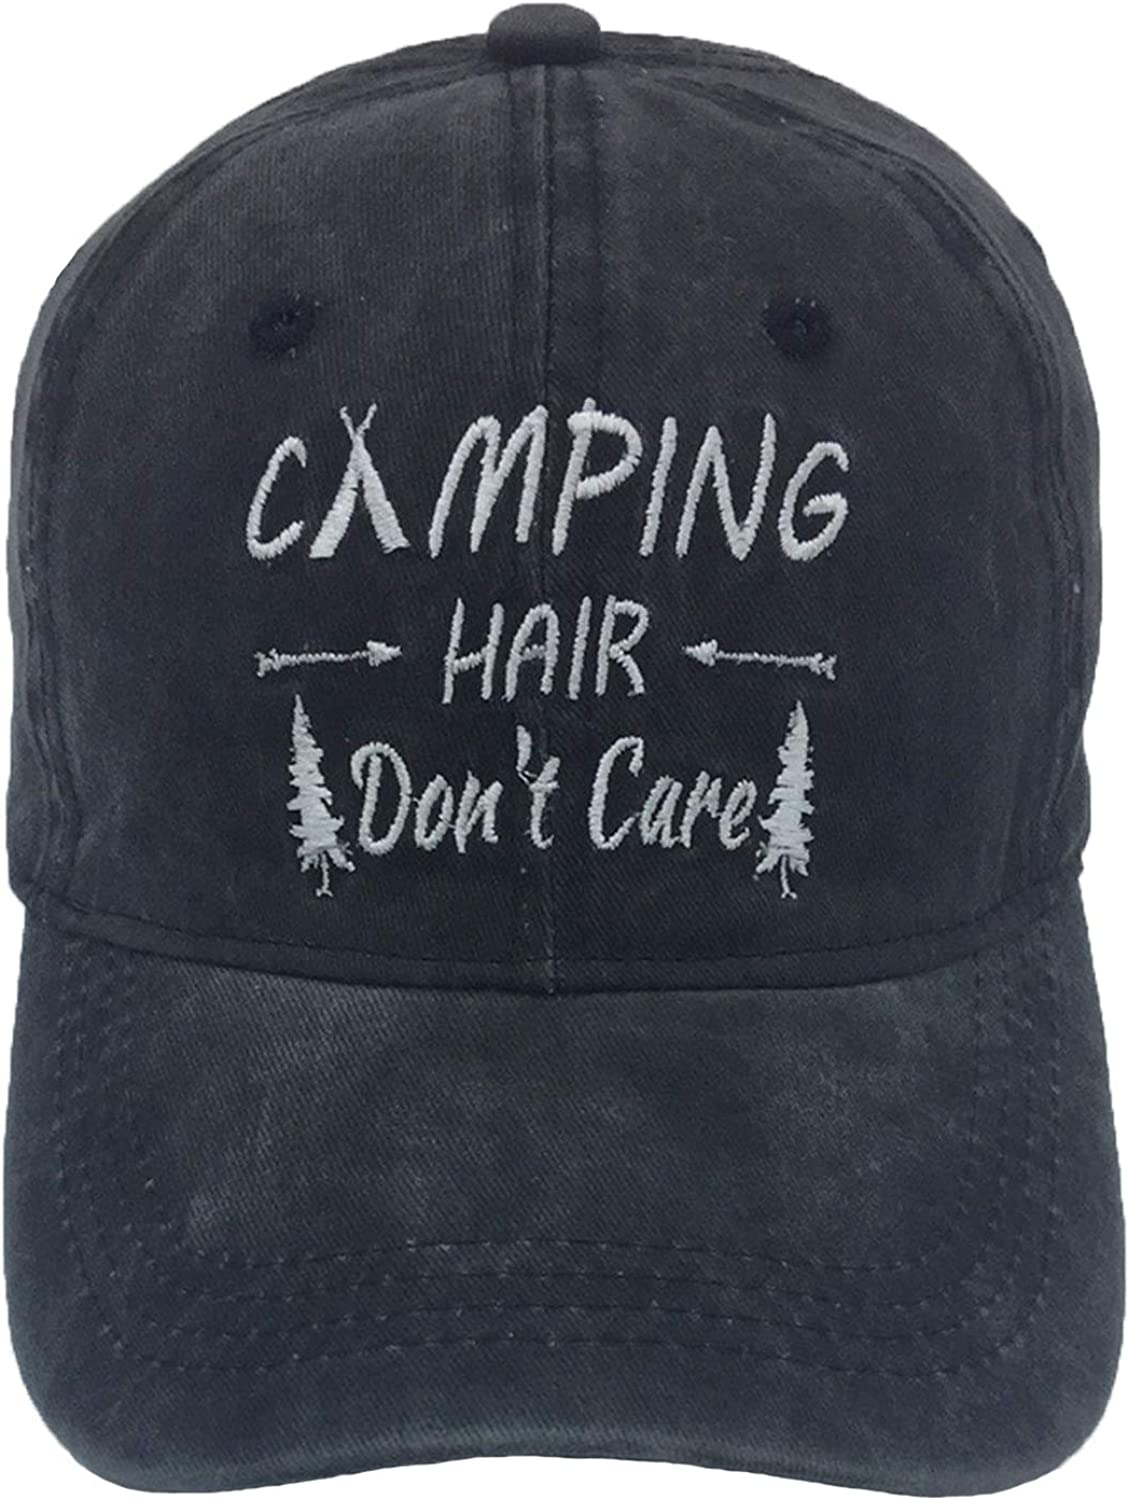 6e9cf6c4 SARA NELL Unisex Embroidered Embroidered Embroidered Baseball Cap Camping  Hair Don't Care Vintage Adjustable Dad Hat Black f6c284